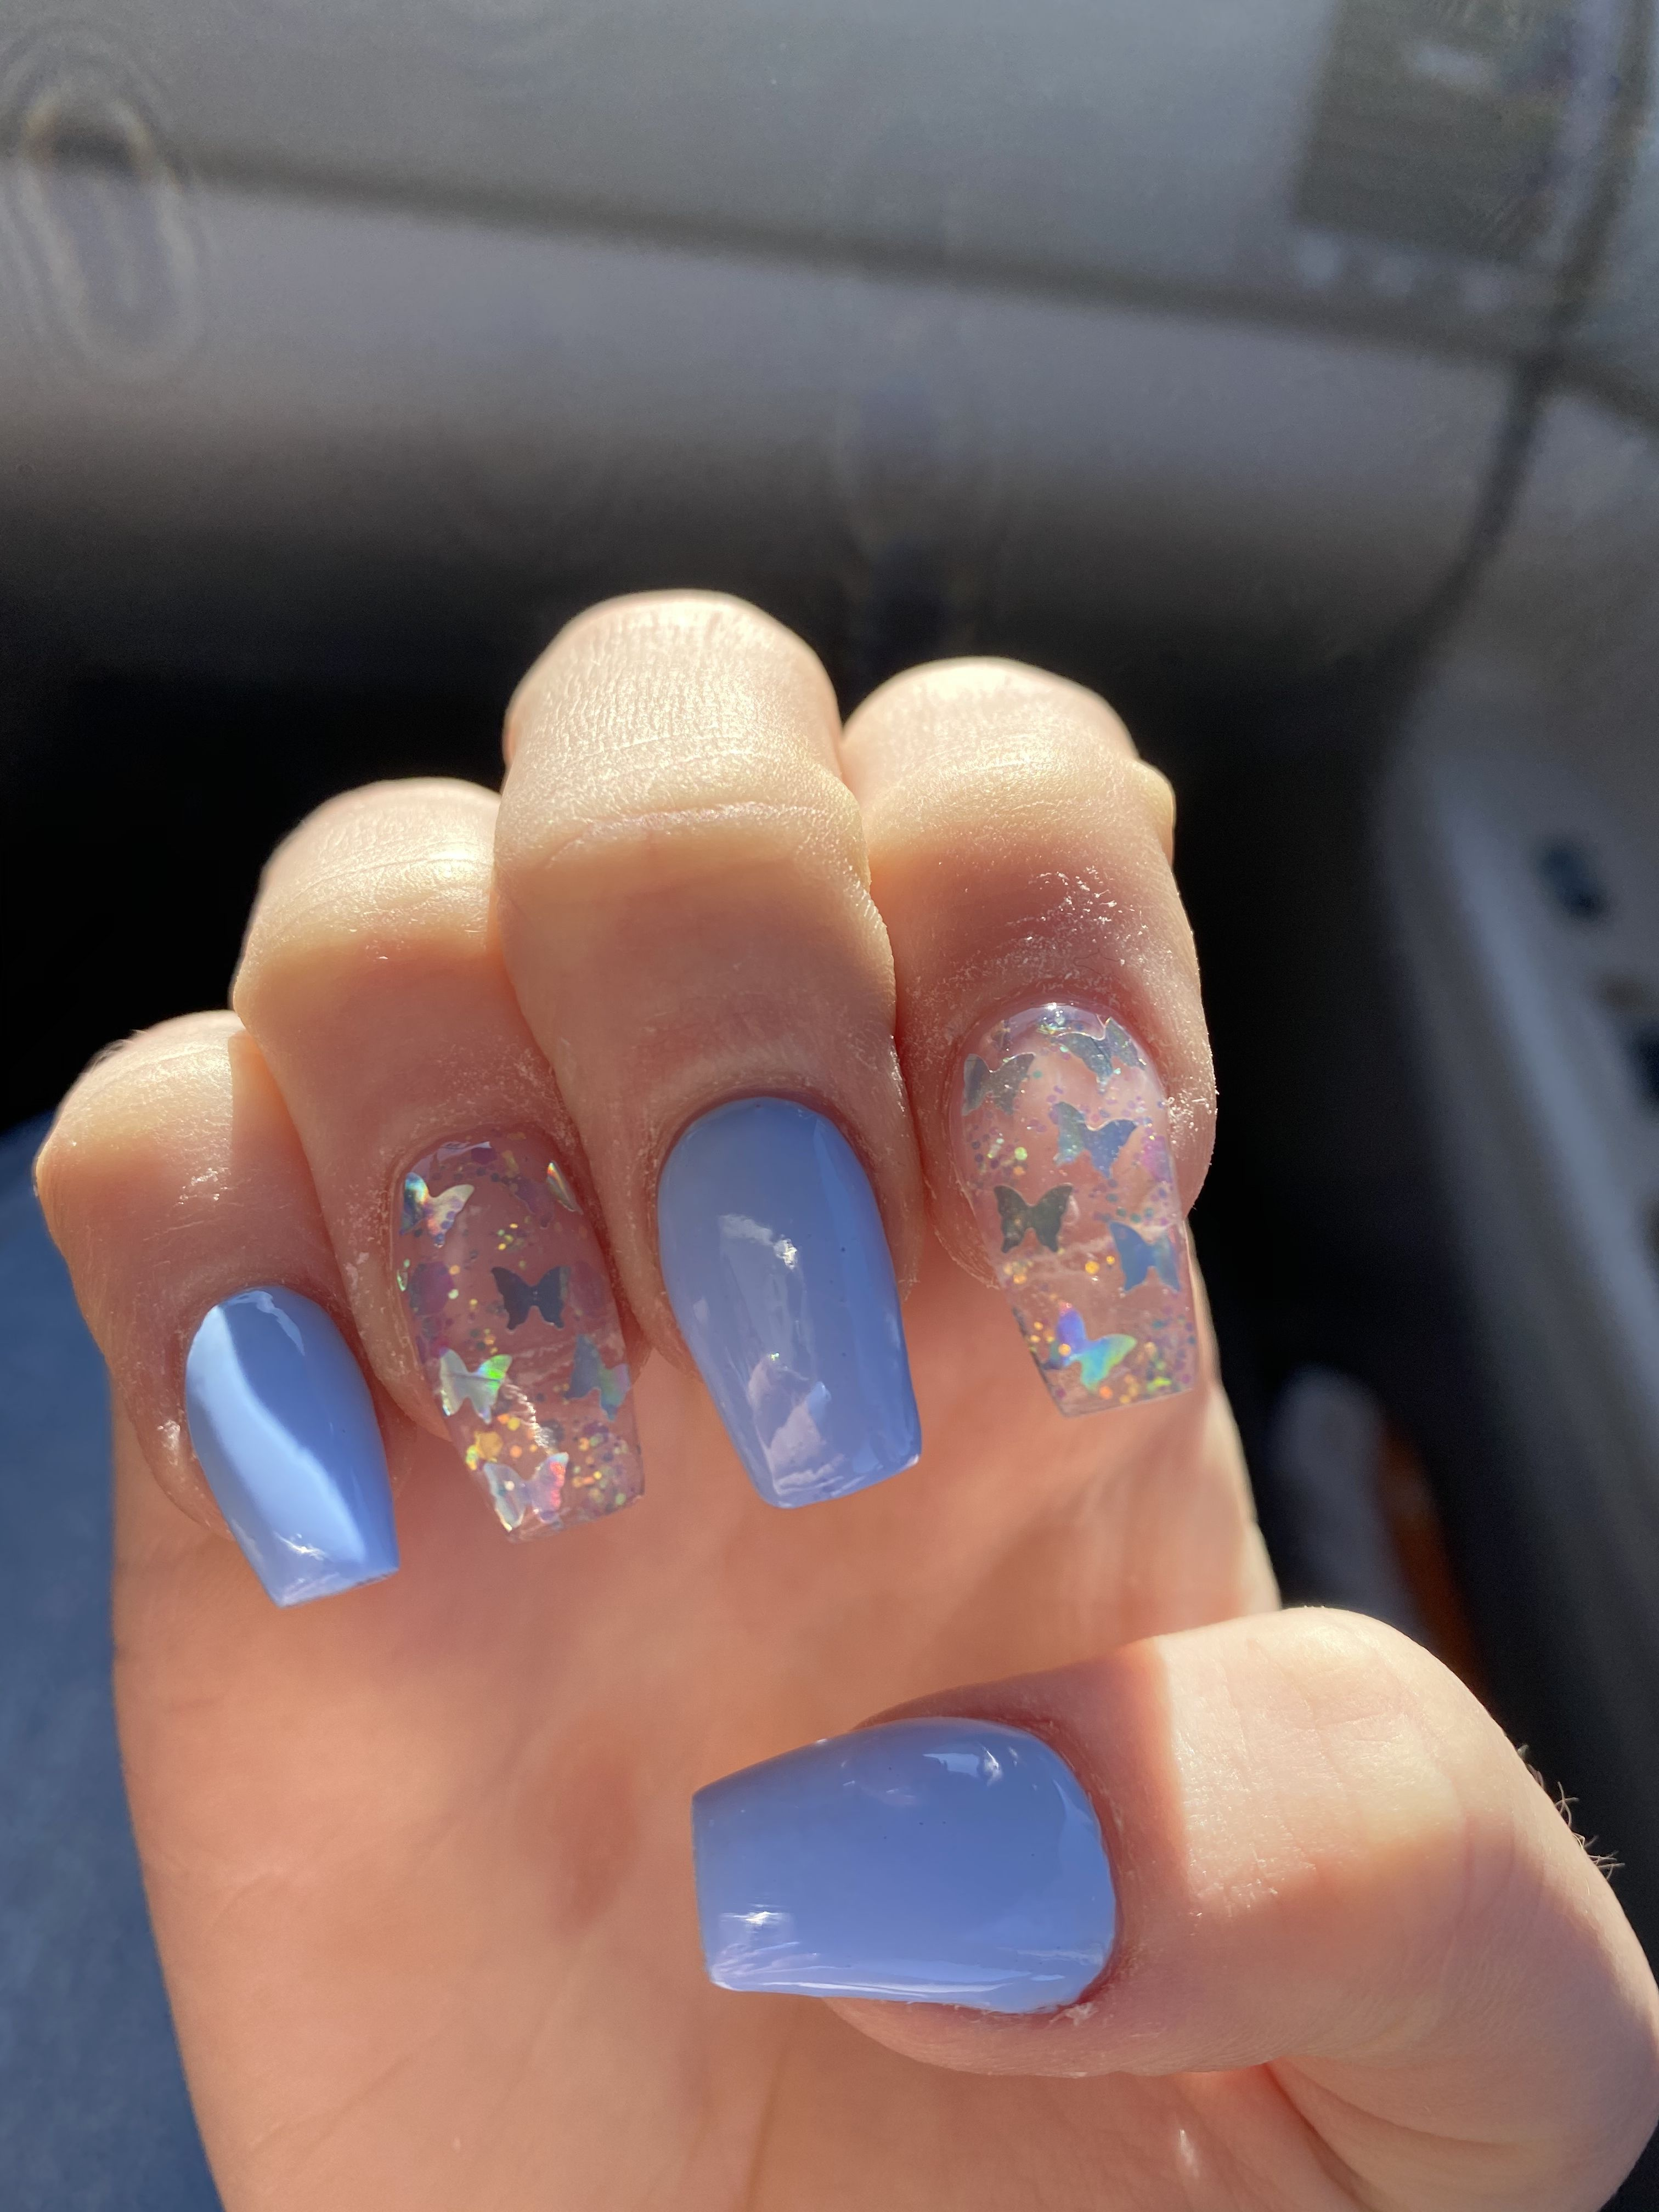 Blue Butterfly Nails In 2020 Short Acrylic Nails Designs Short Square Acrylic Nails Acrylic Nails Coffin Short